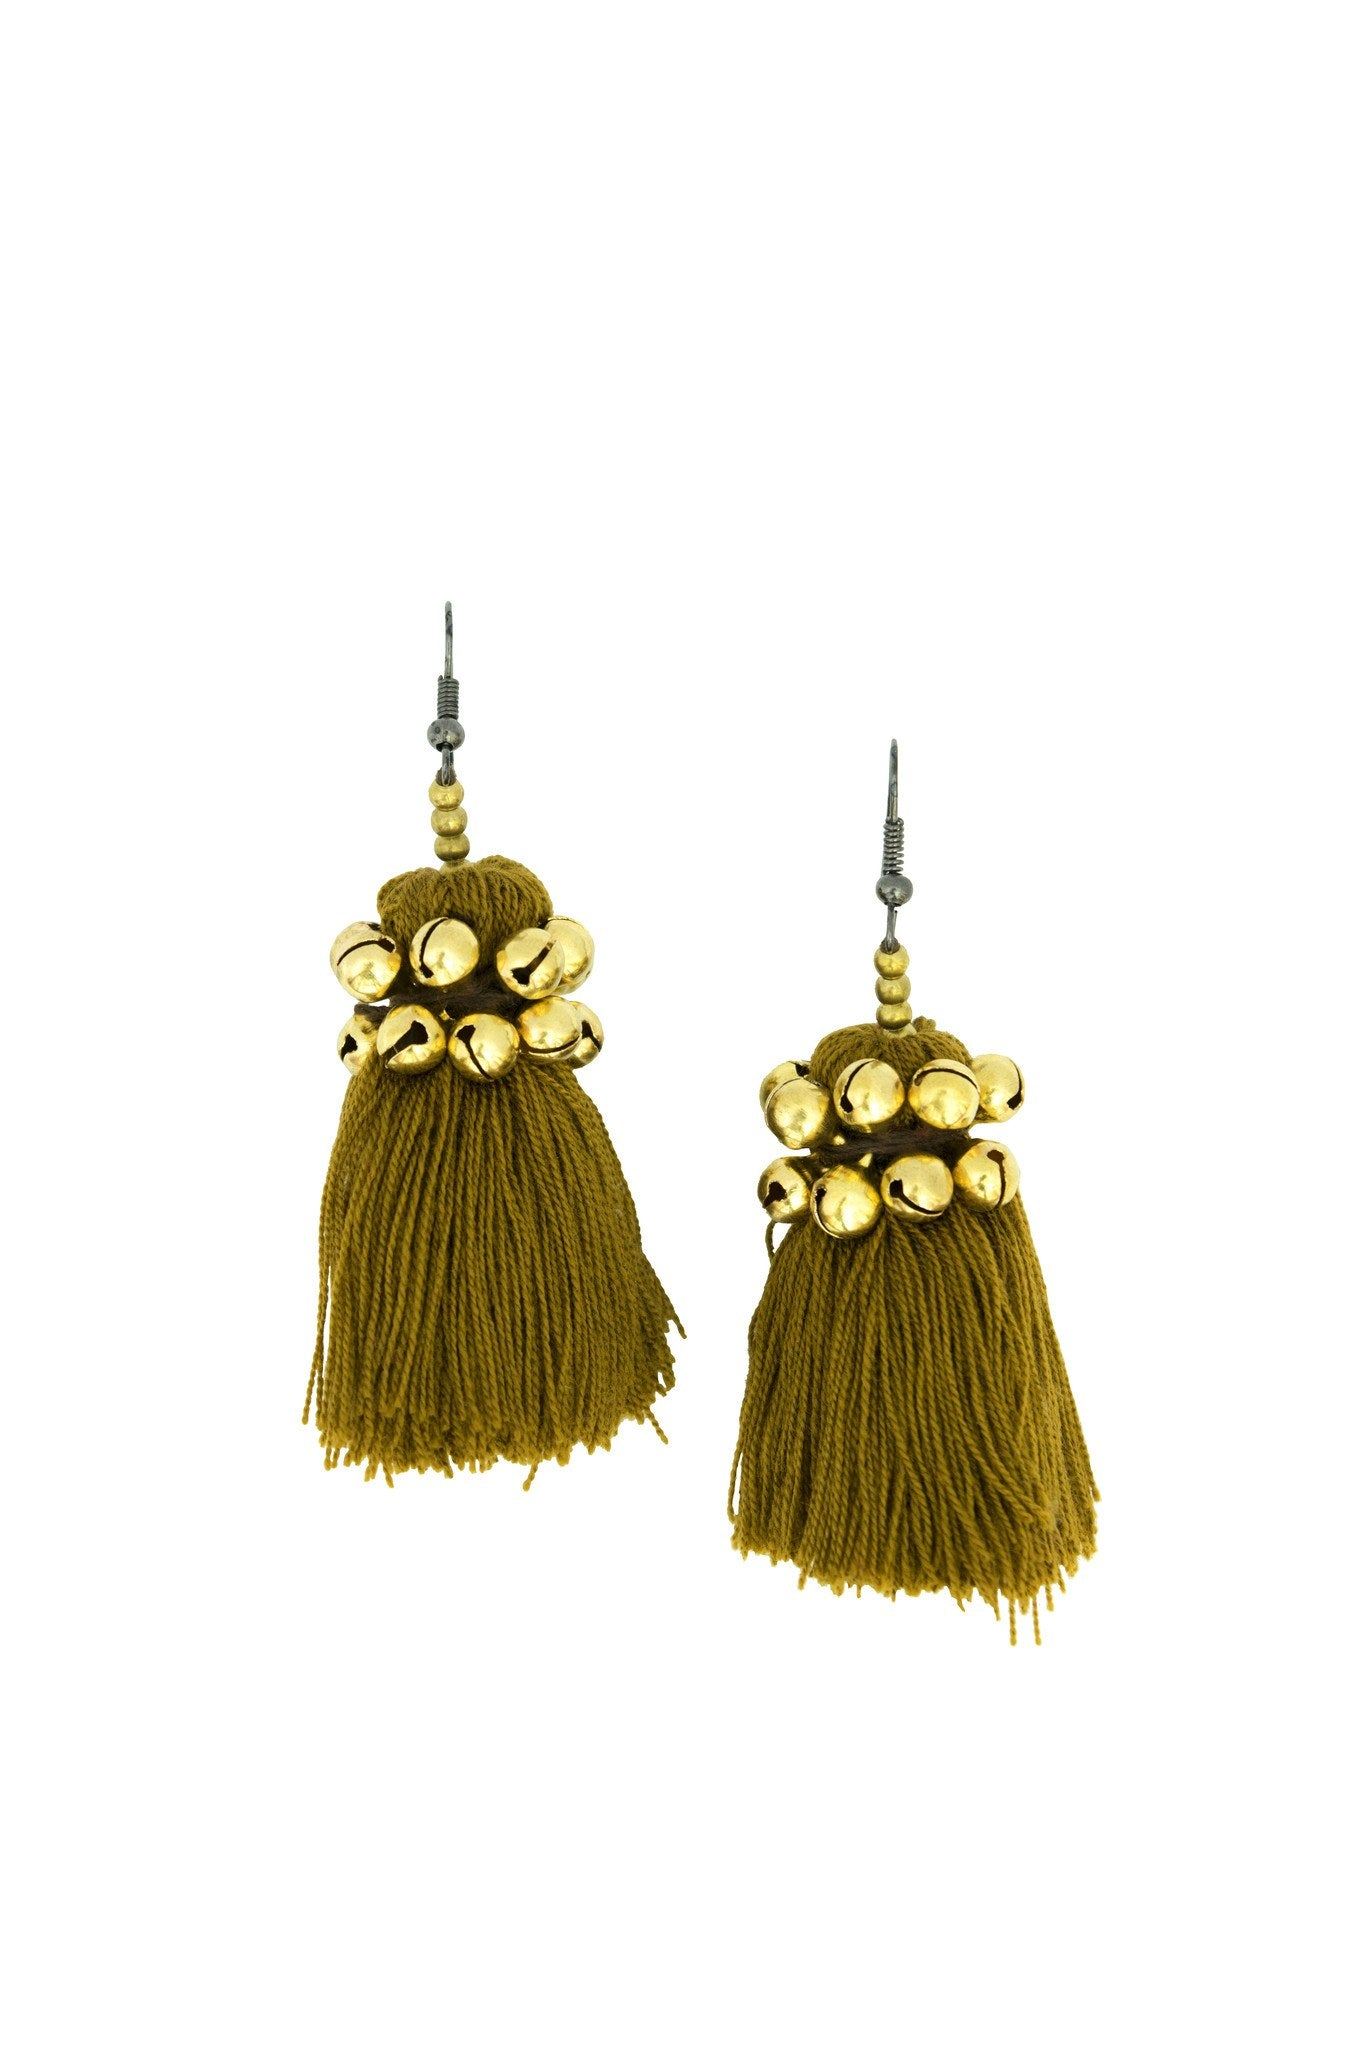 Hill Tribe Earring with Pom pom handmade - CCCollections